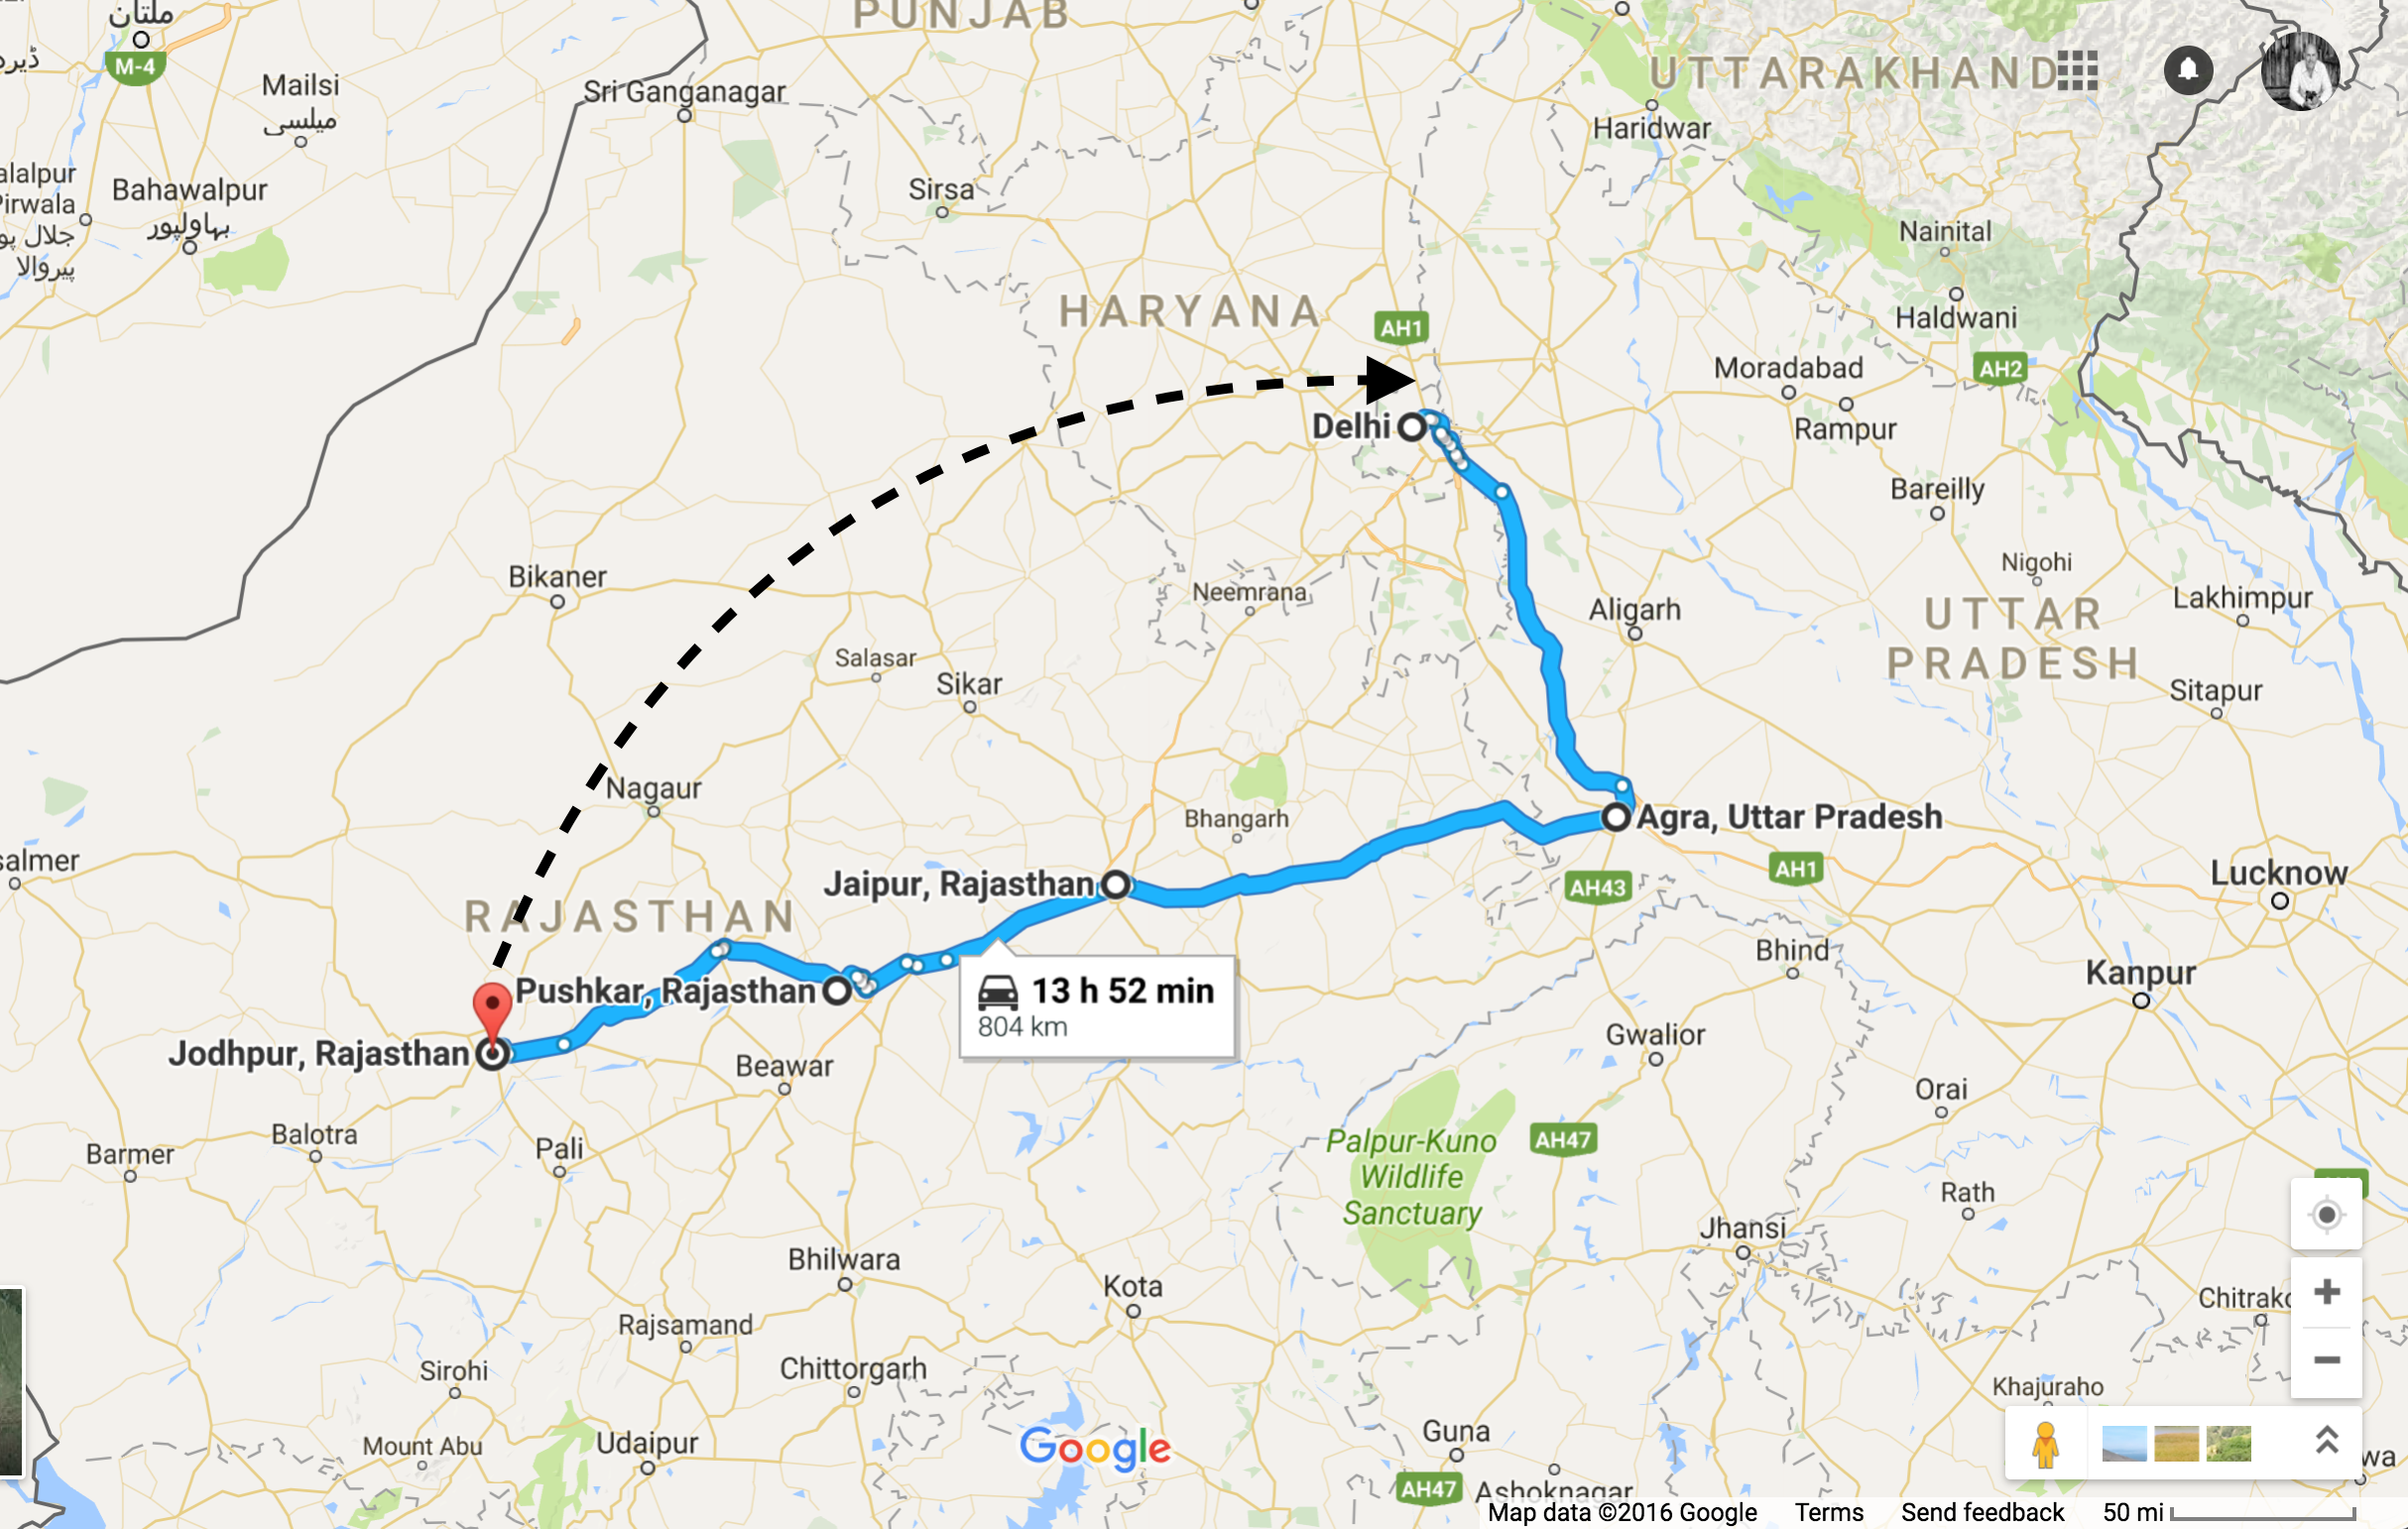 map-medium-detail-of-2017-india-trip